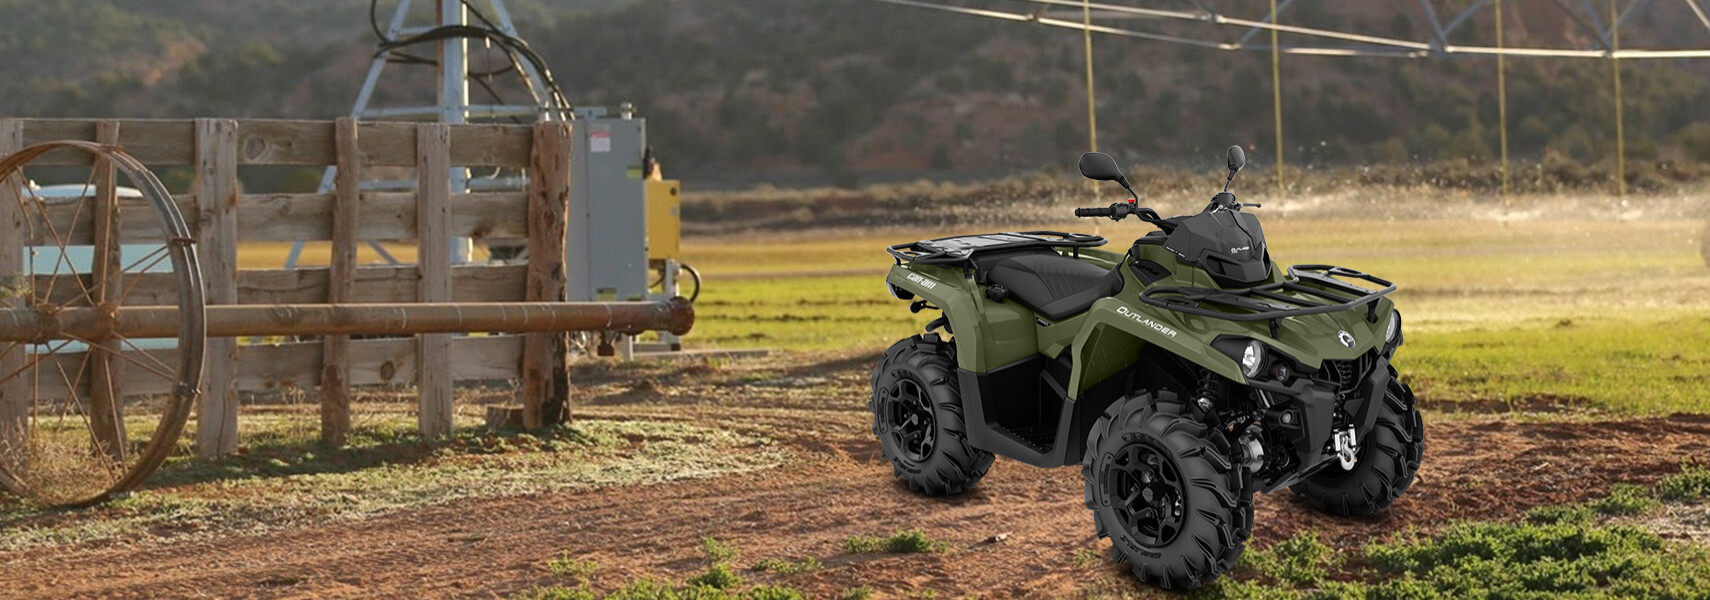 Can-Am ATV - 2020 OUTLANDER PRO+ 450 T